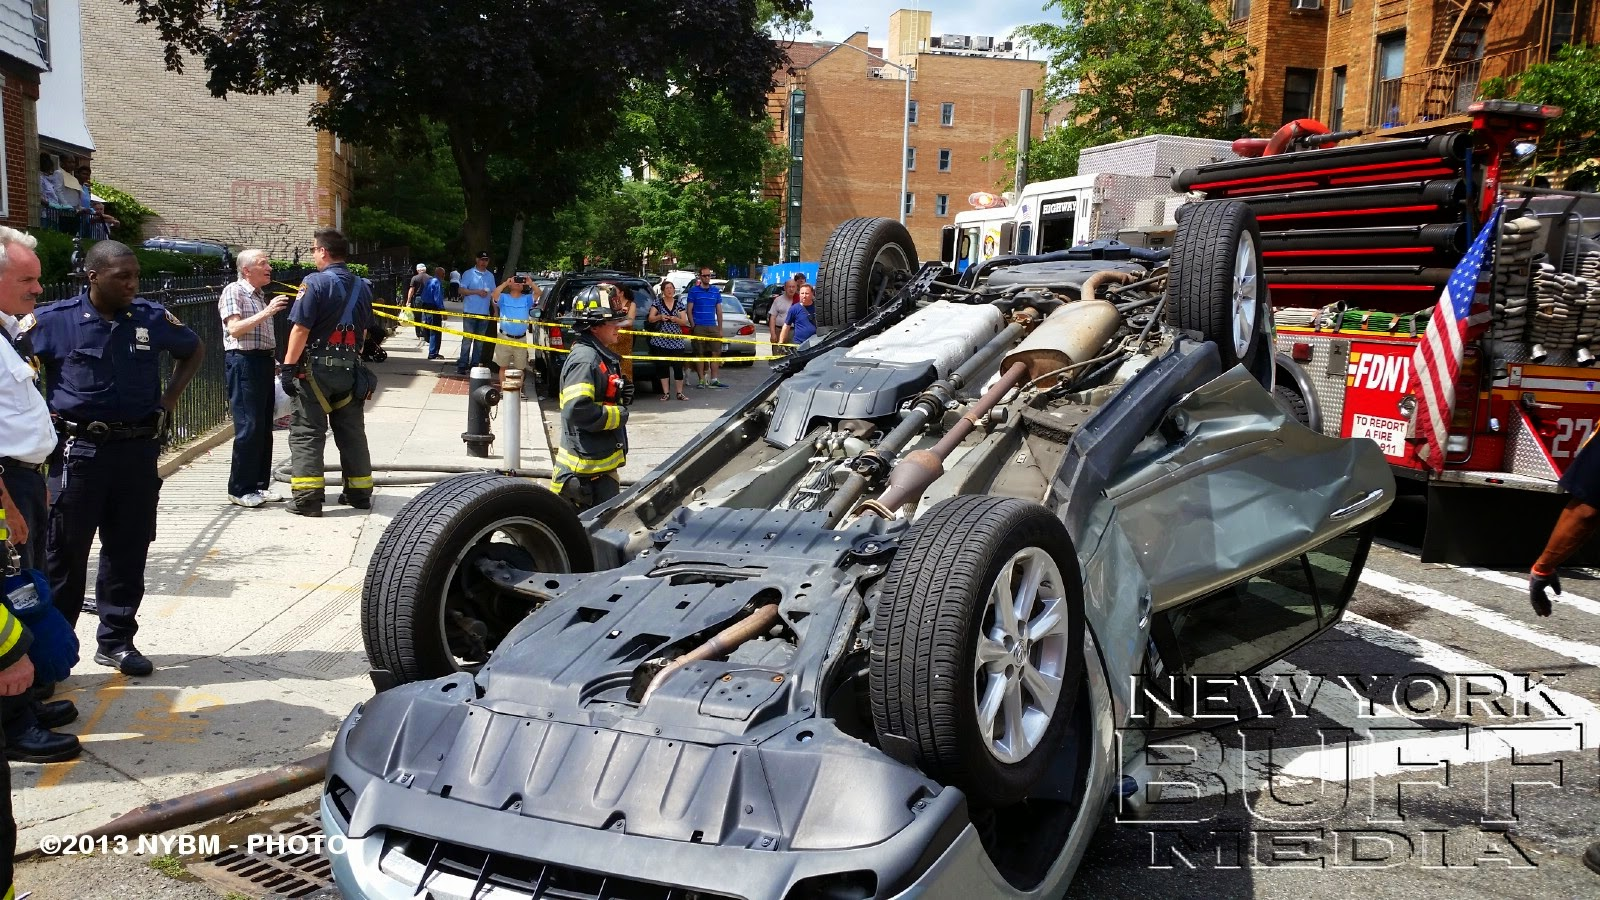 New York Buff Media Car Overturns On Ave P In Brooklyn